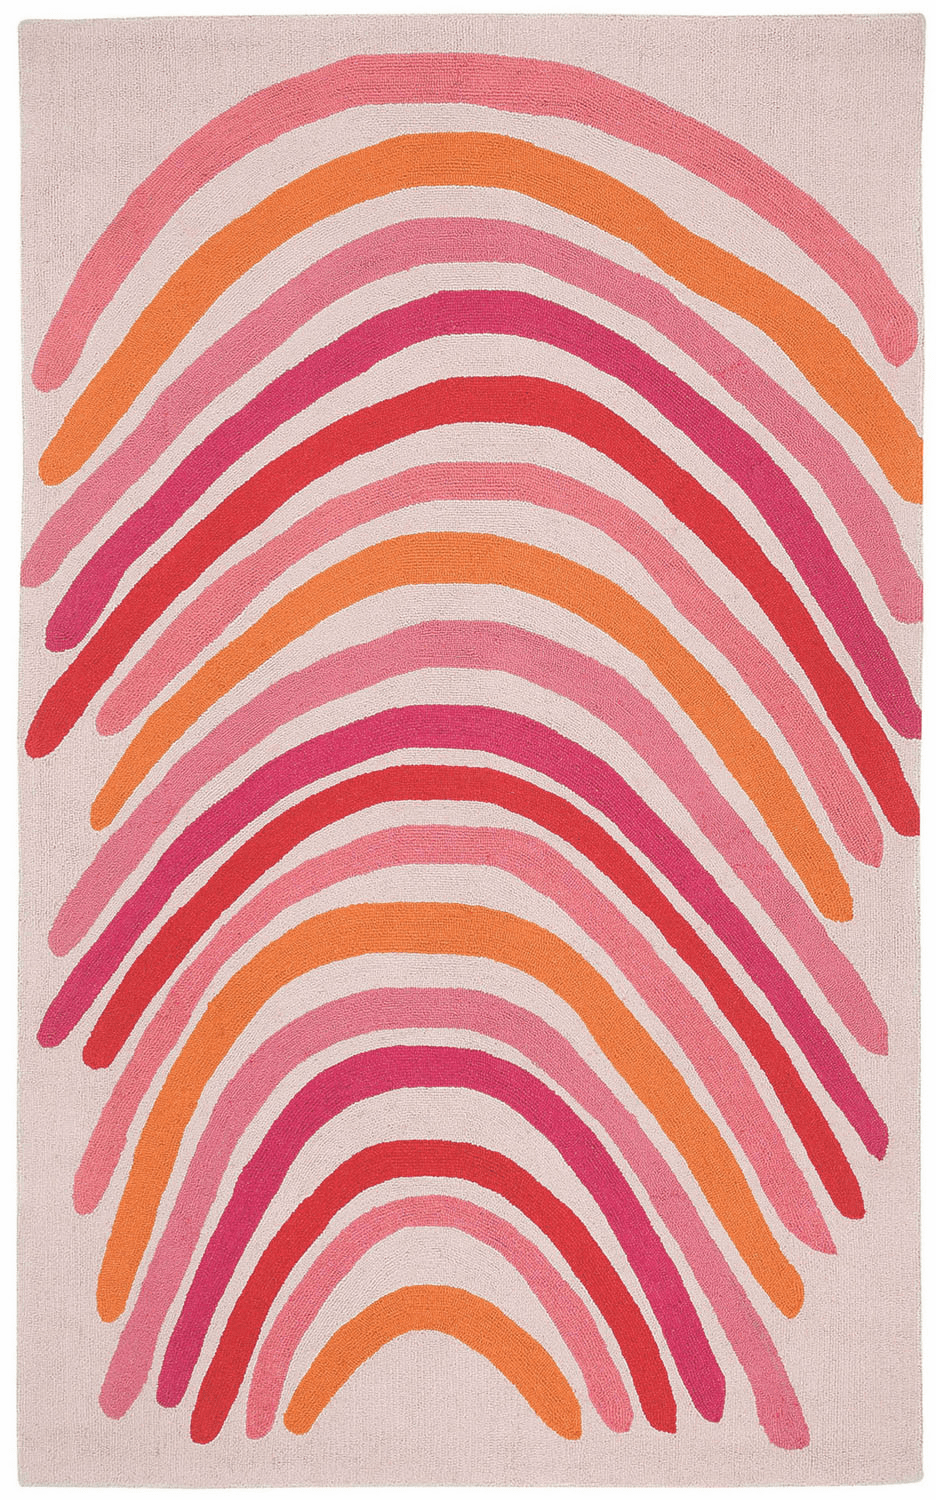 Loop Hooked Blush Multi Rug